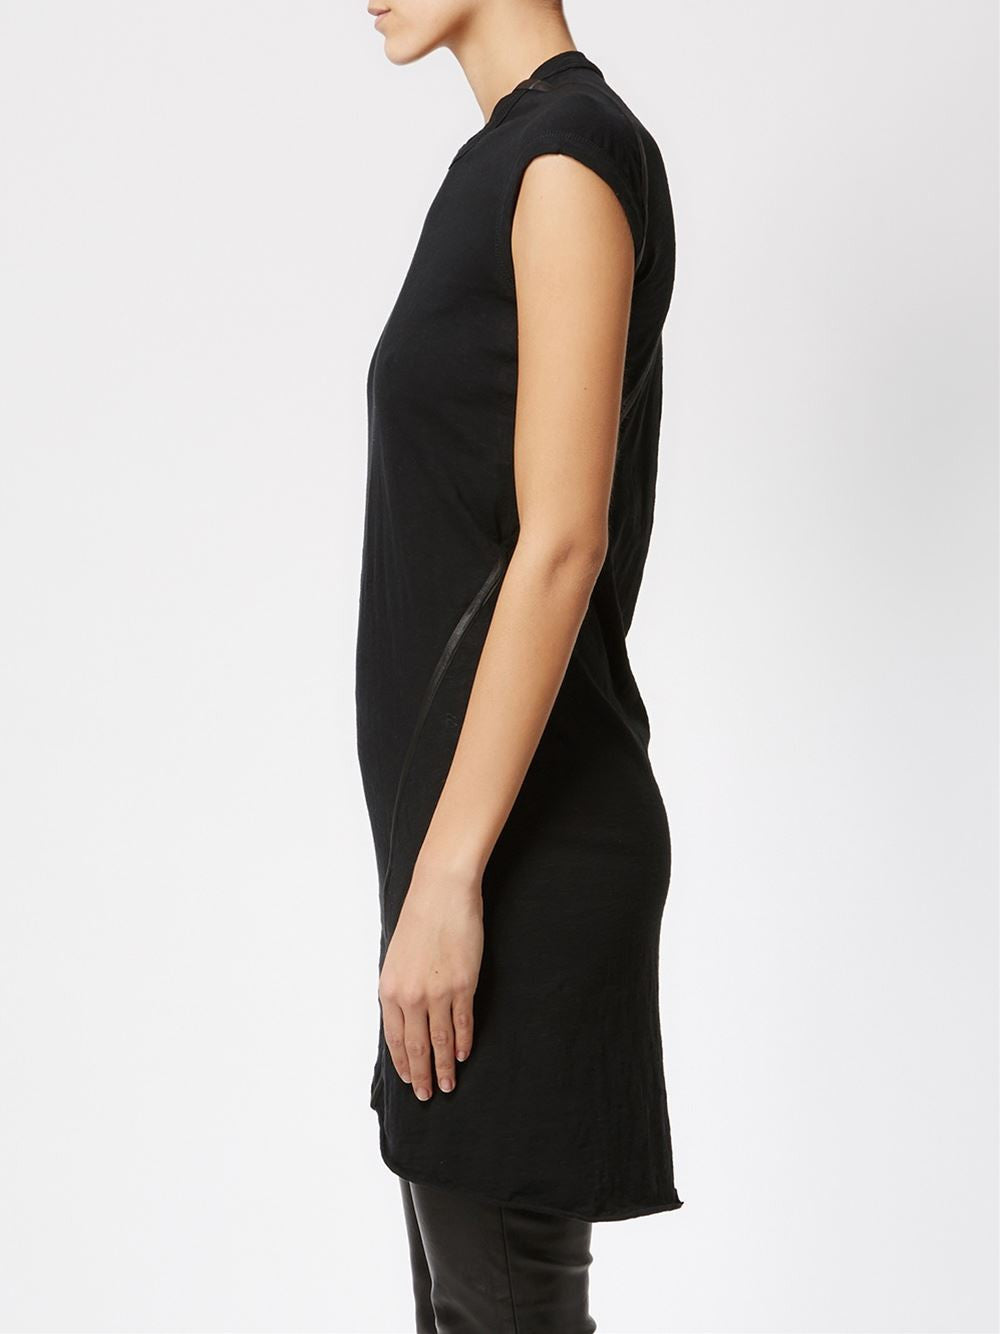 'Incertaine' Cotton Dress | INCERTAINE